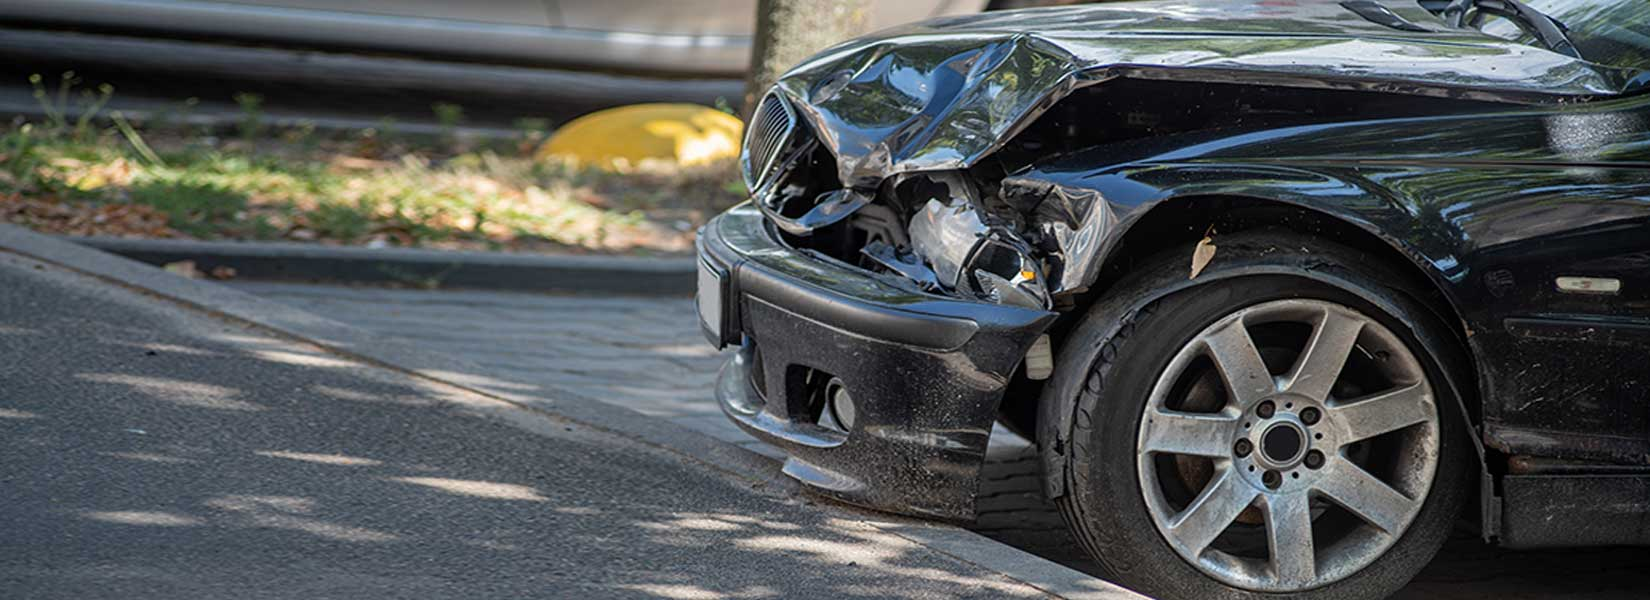 wrong-way accidents-what-to-know